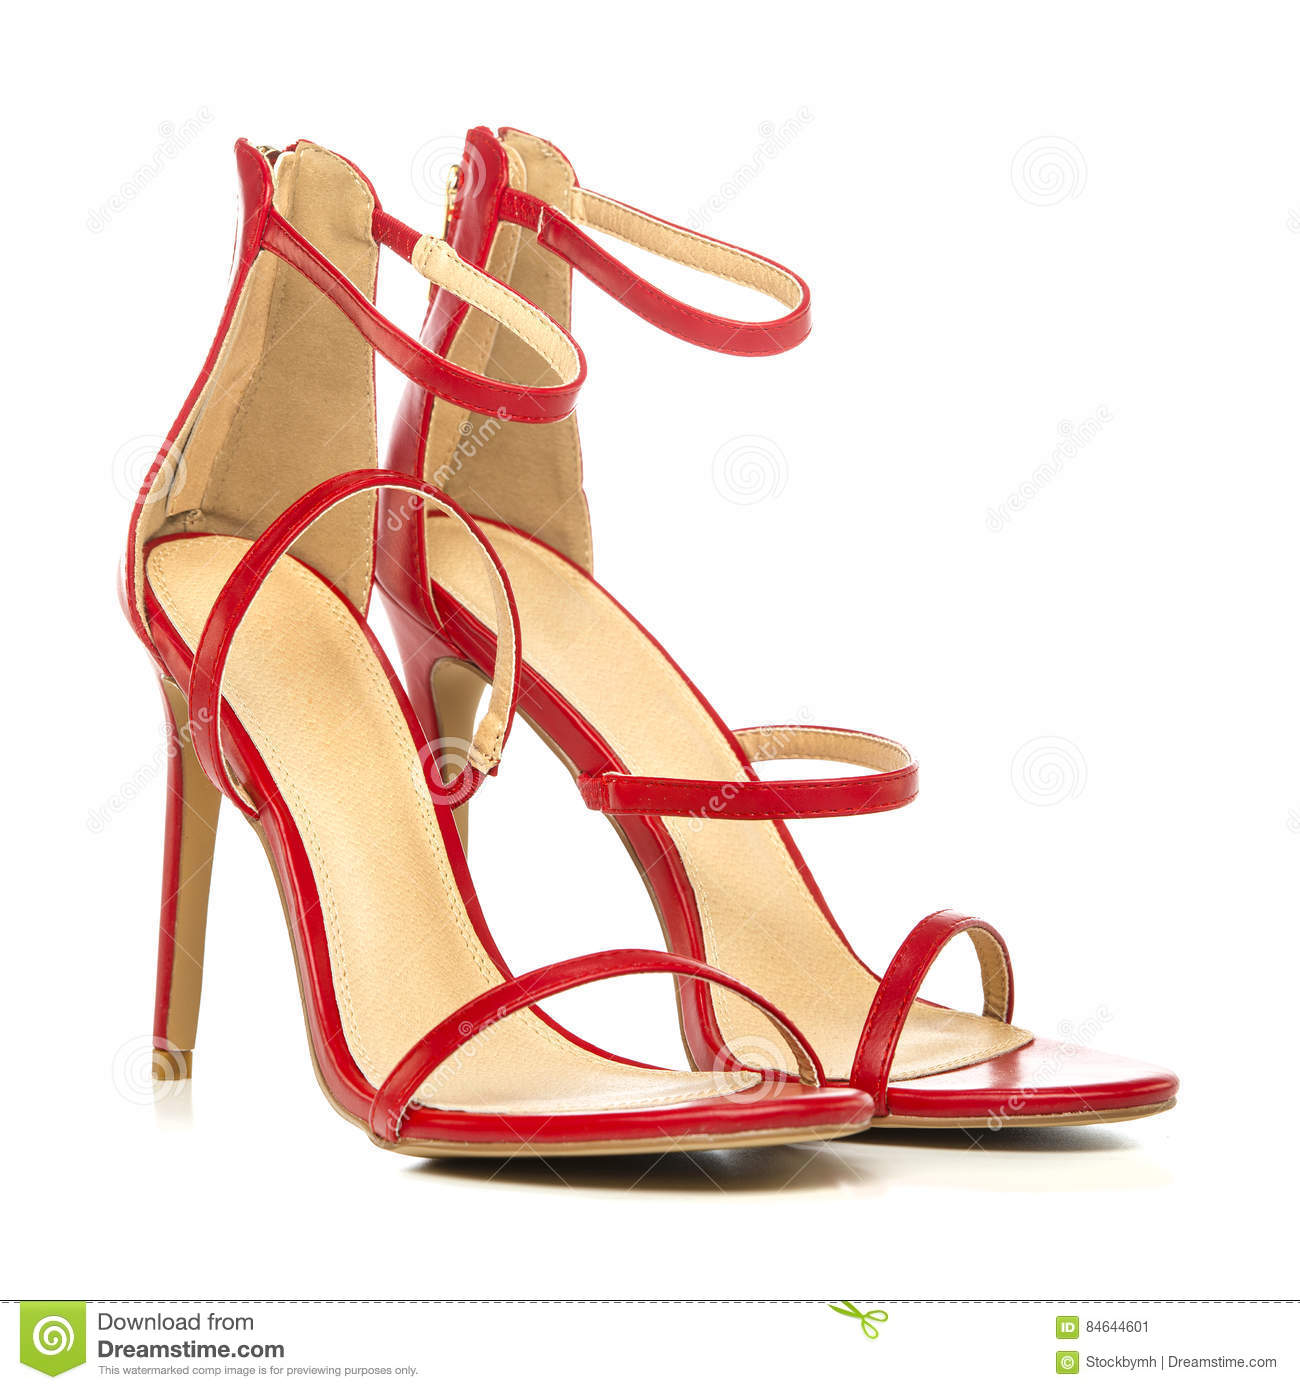 00886dd49 Fashionable Strappy High Heels Sandals In Red Stock Image - Image of ...